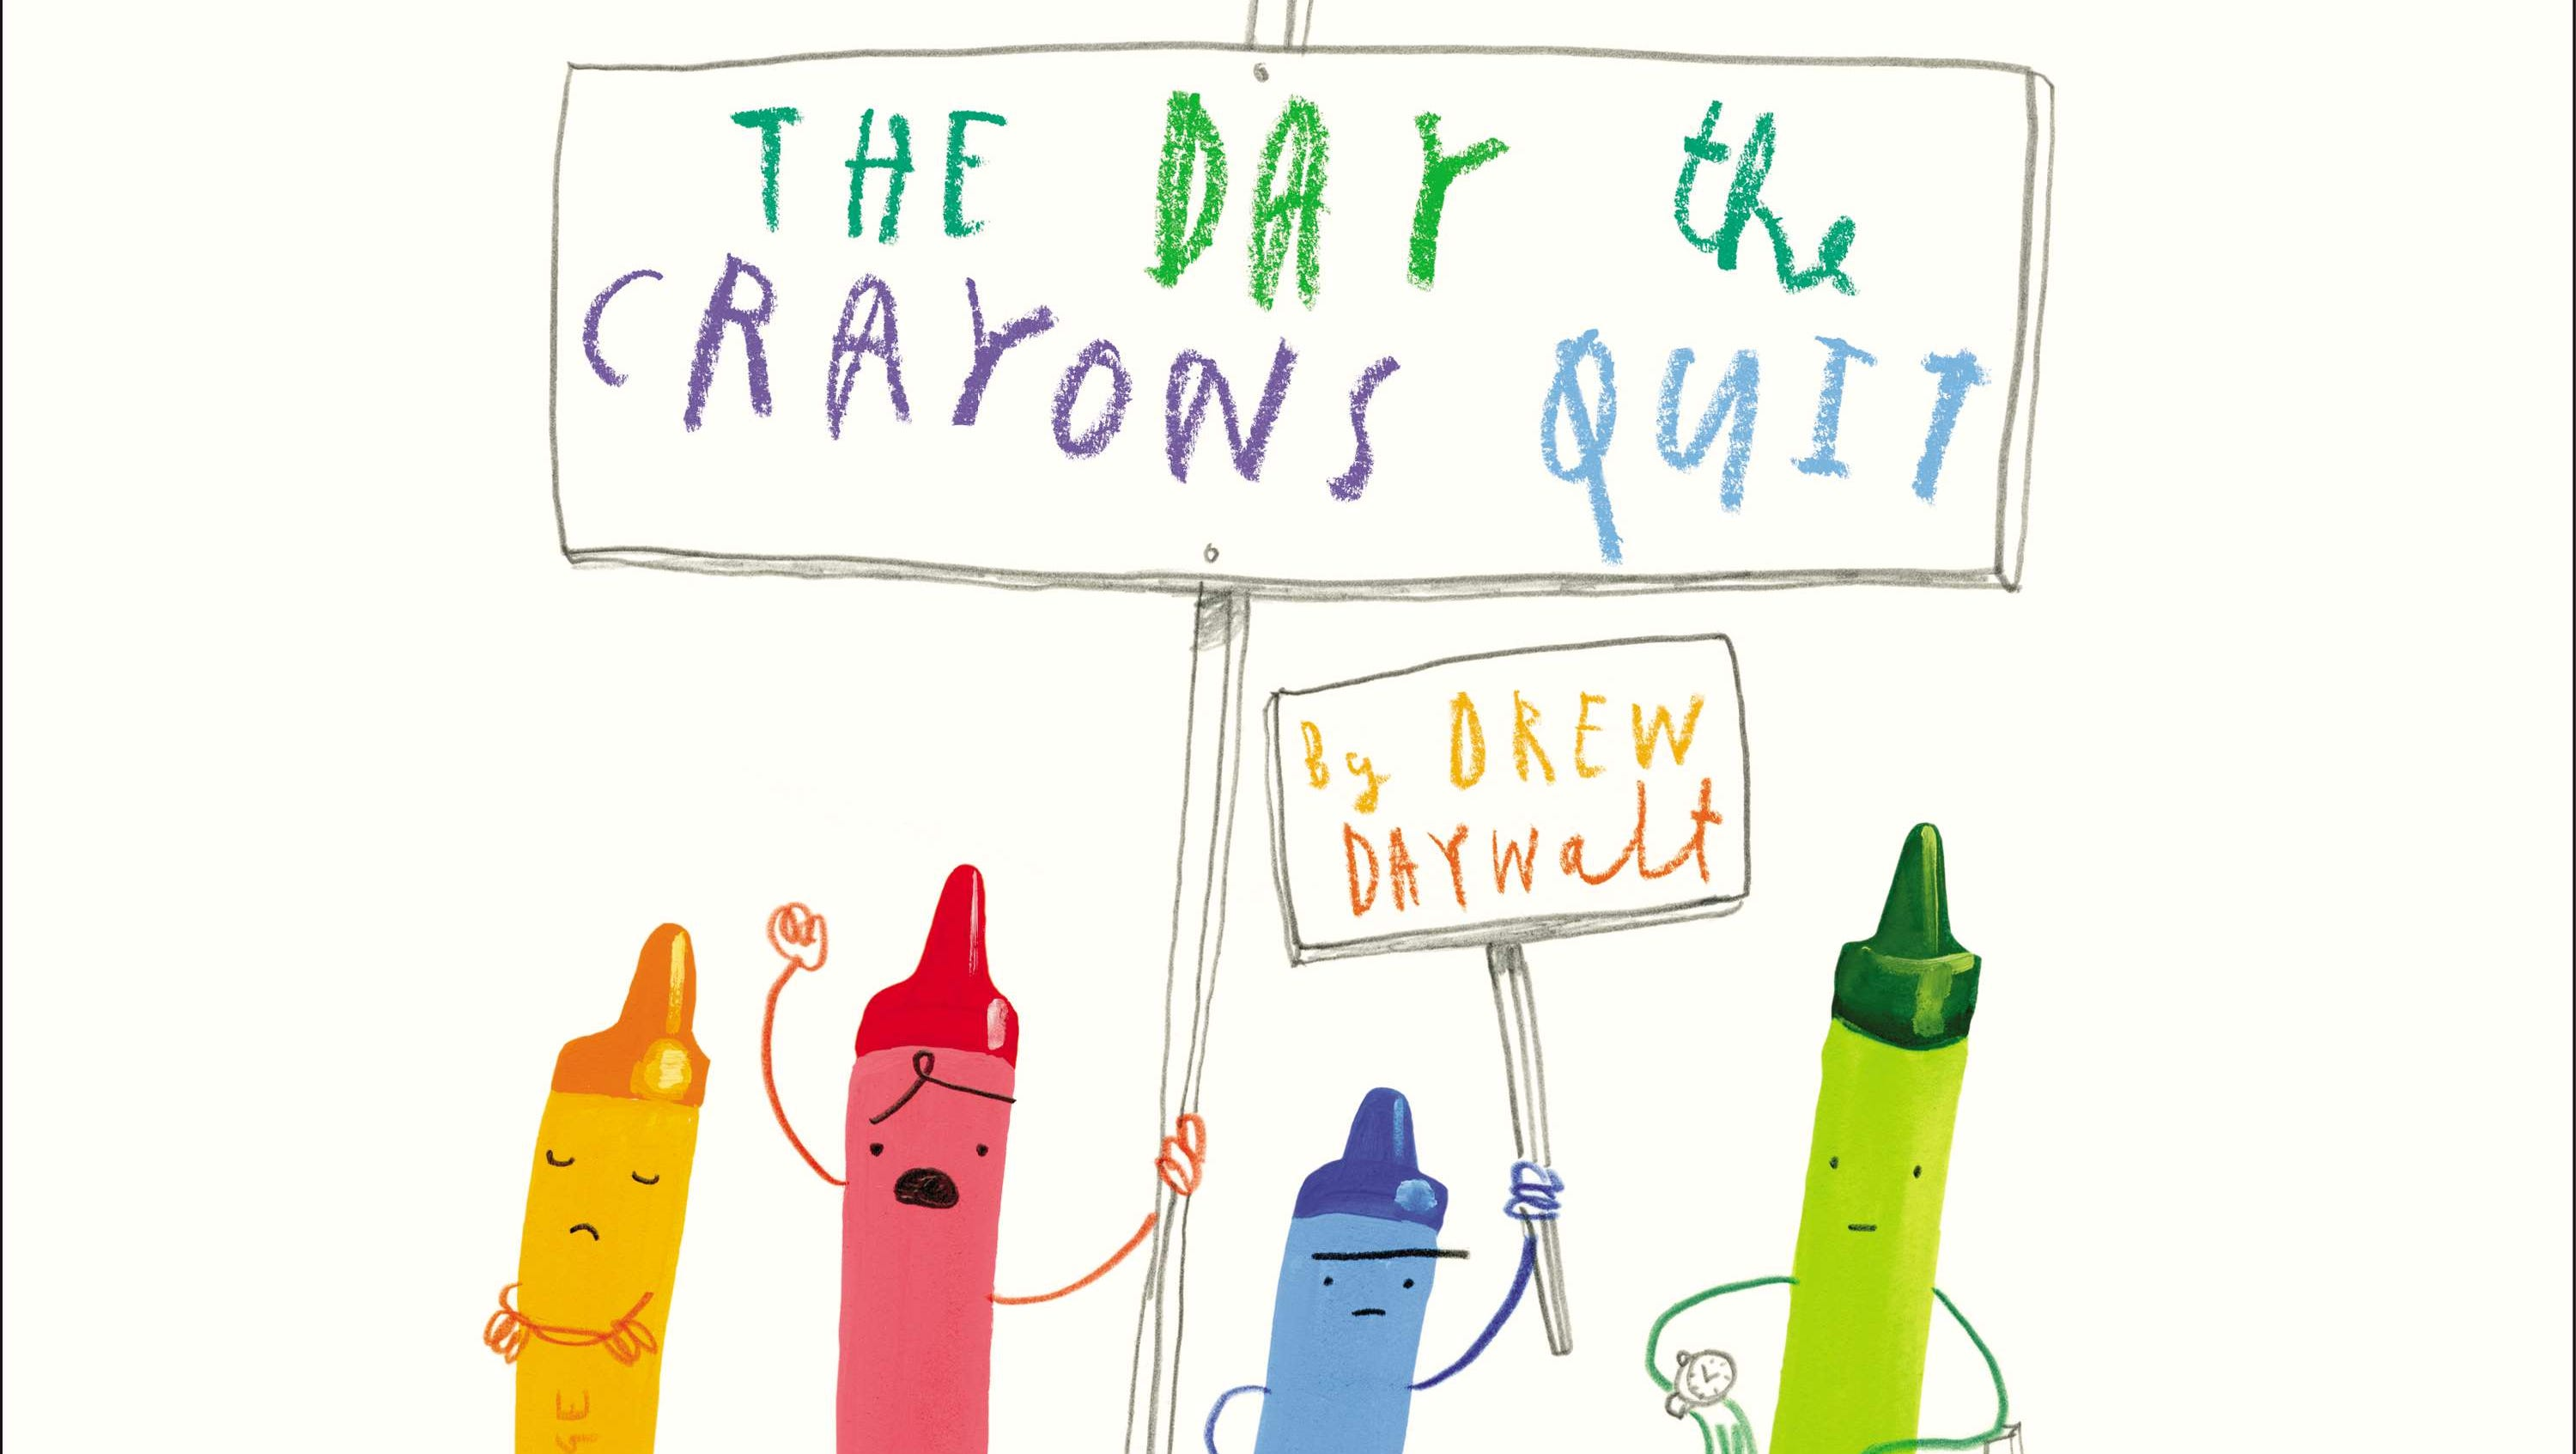 Book Buzz: Rebellious crayons head to Hollywood